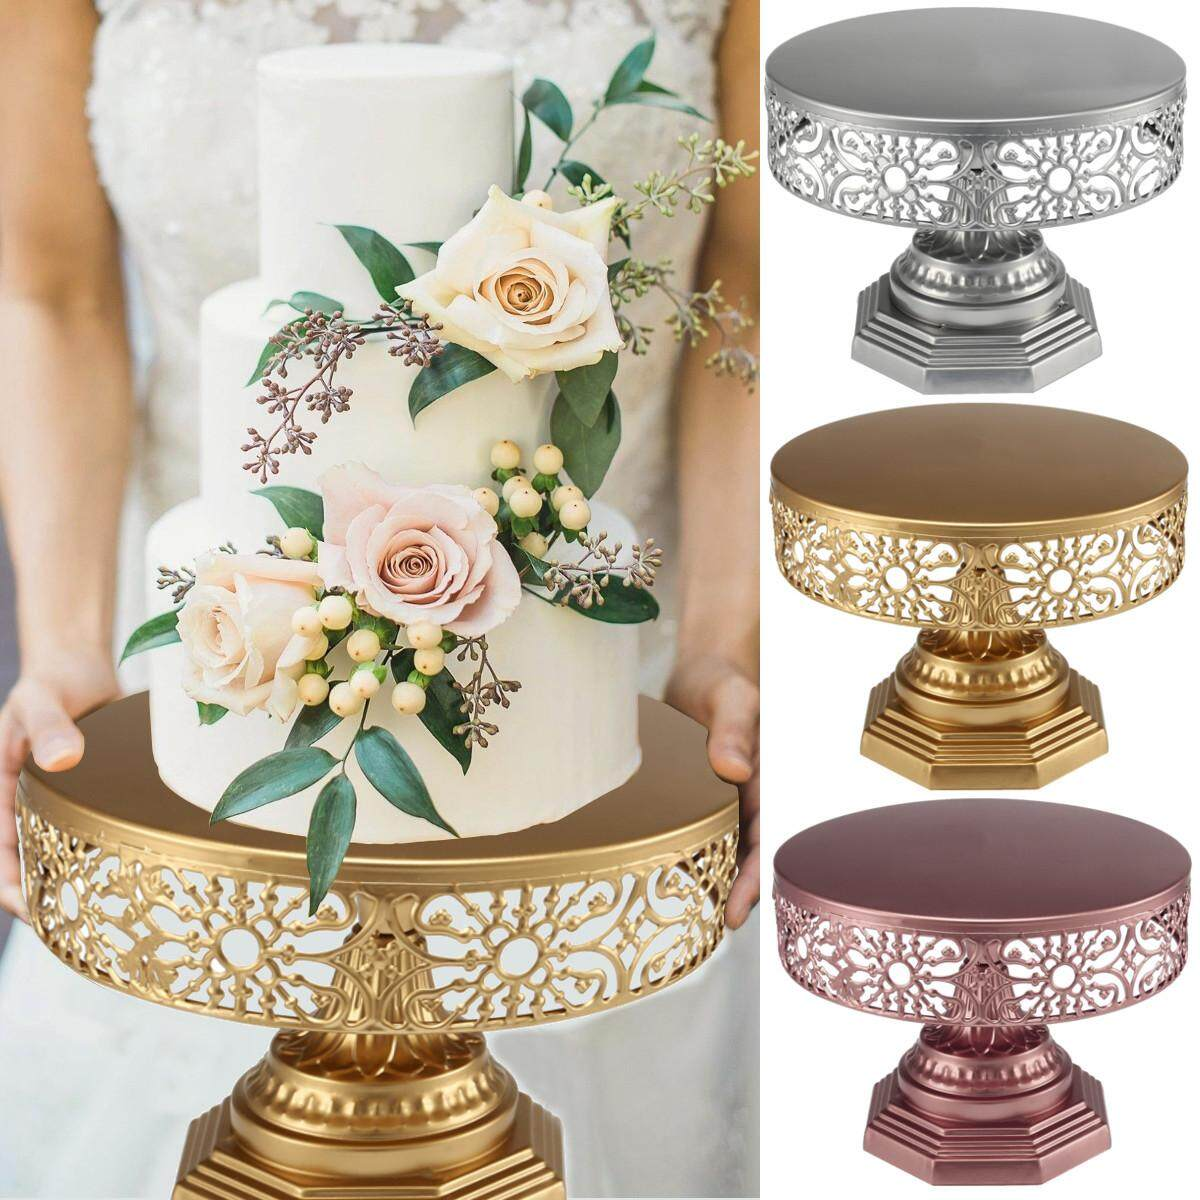 12-Inch Wedding Cake Stand Round Metal Event Party Display Pedestal Plate Tower By Glimmer.